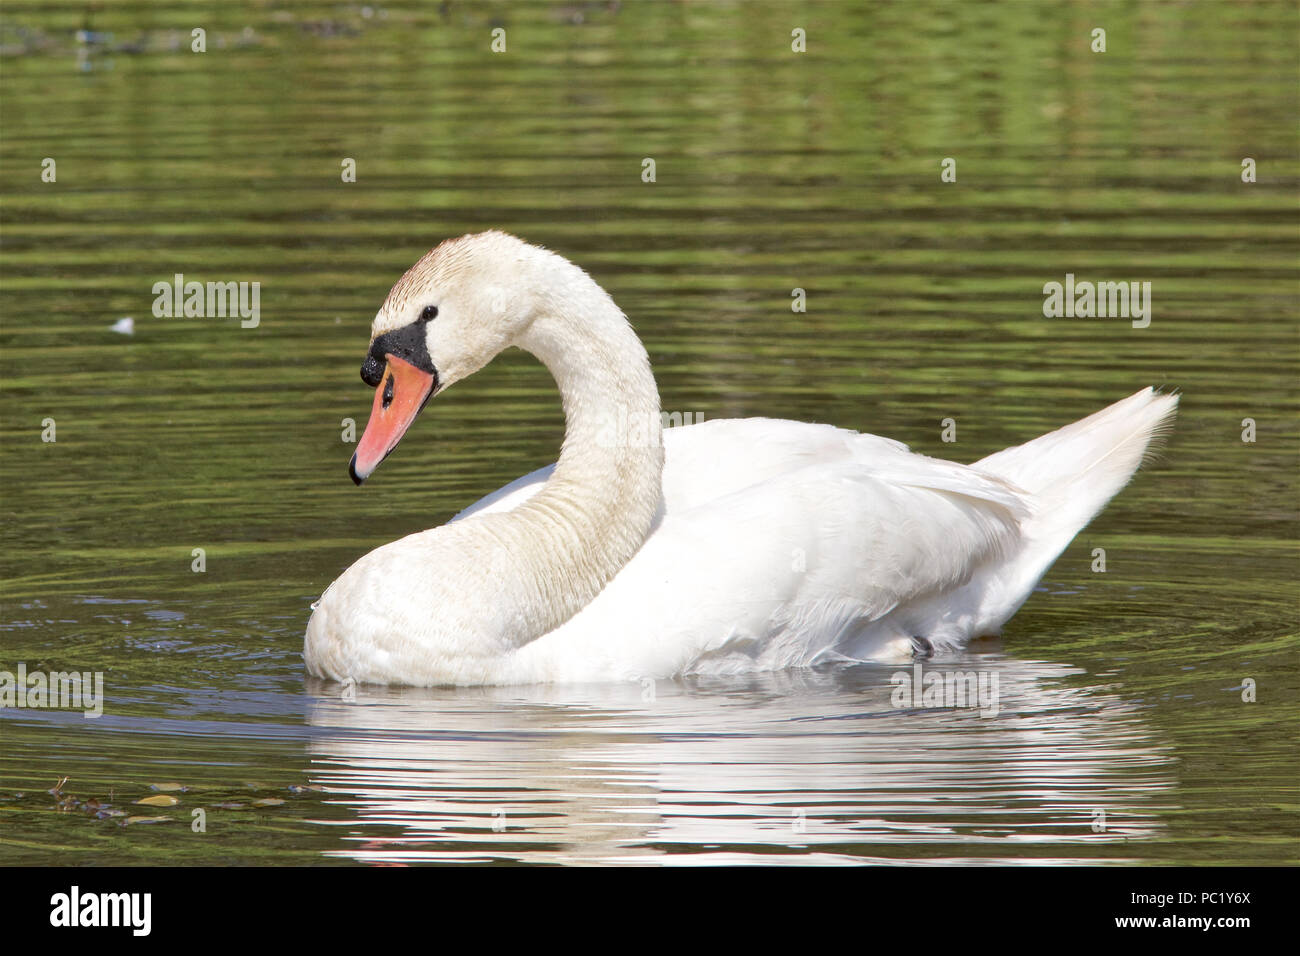 A Mute Swan, Cygnus olor, swimming on a pond. Stock Photo